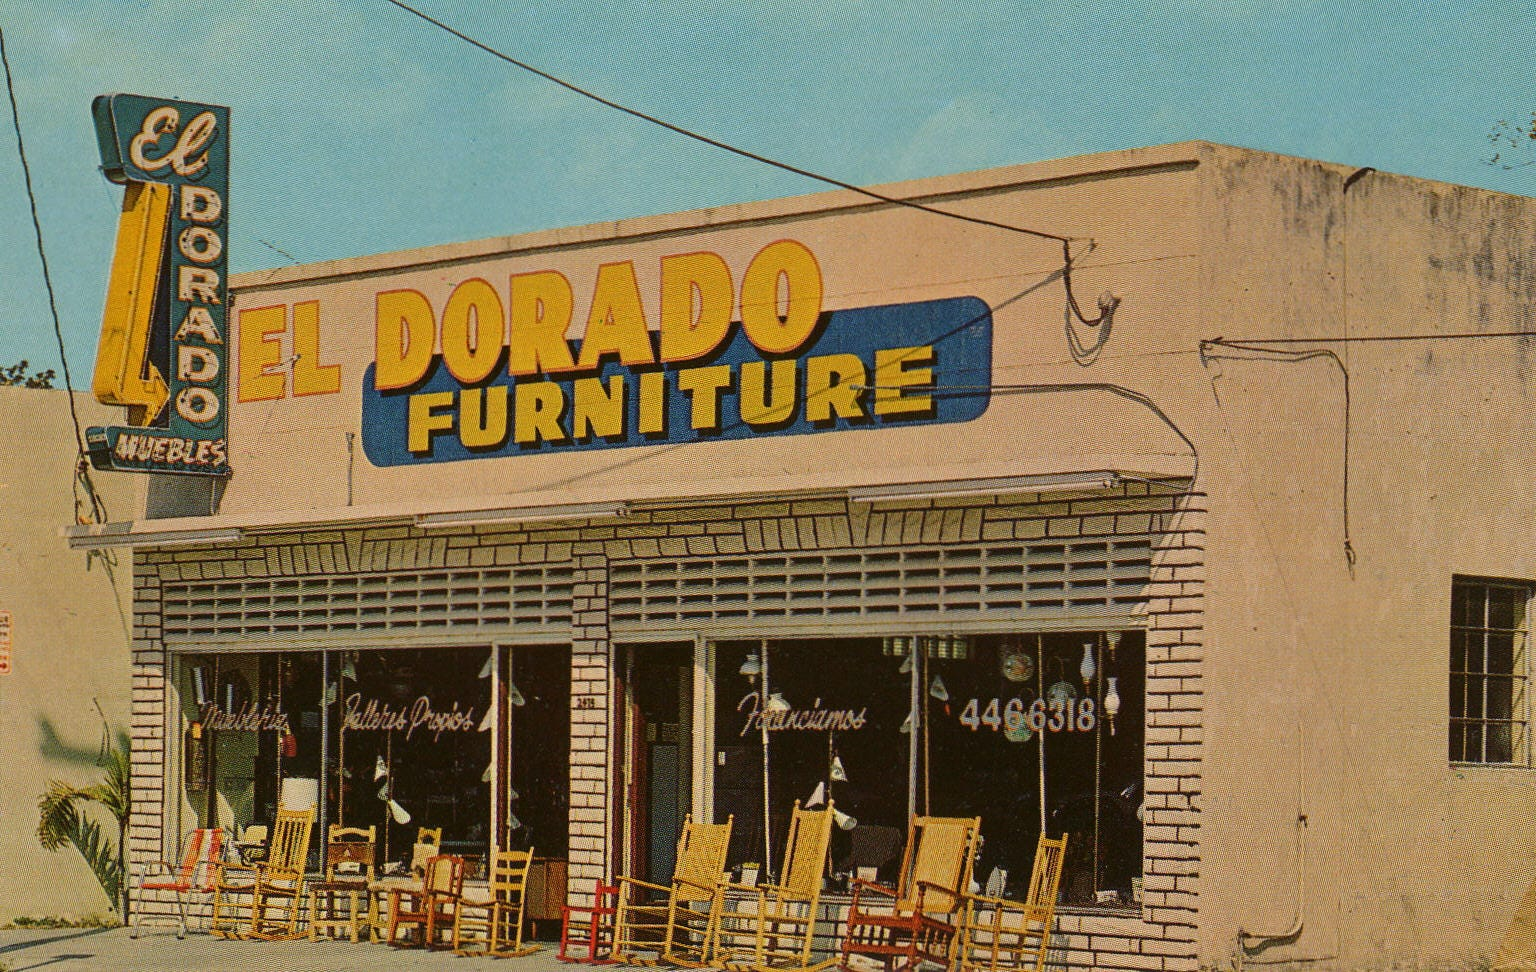 Charmant On June 27, 1967, El Dorado Furniture Opened Its Very First Store In The